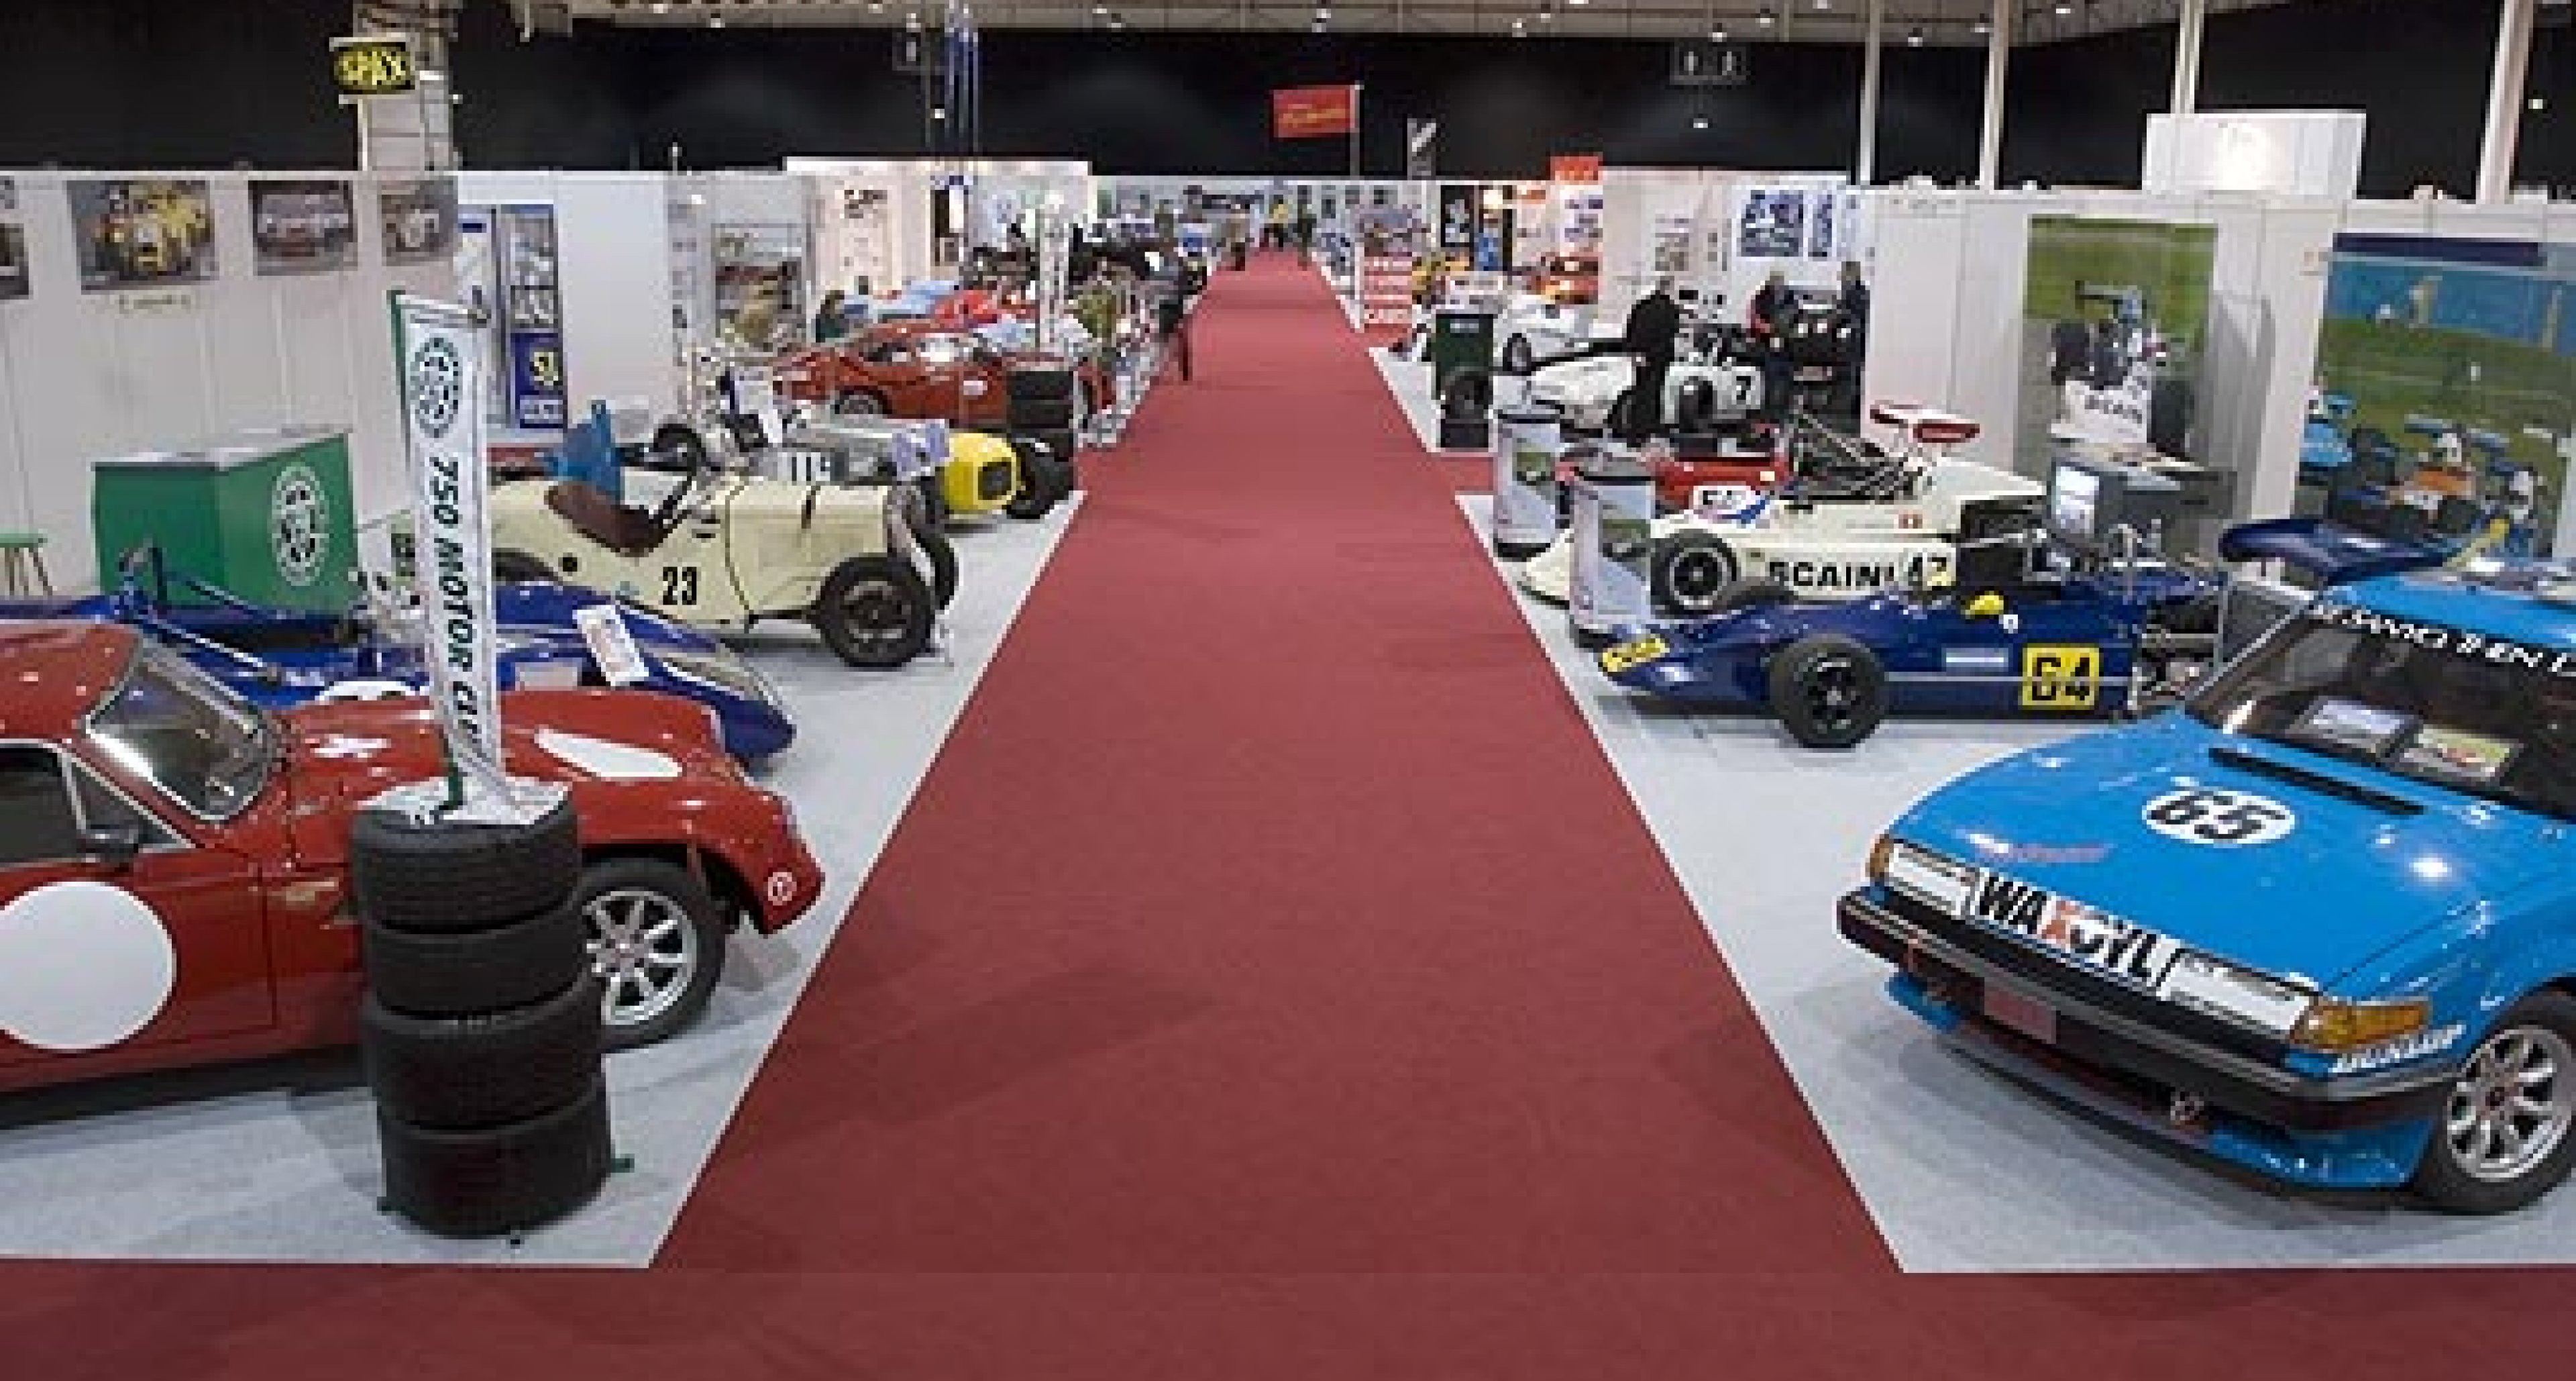 Varied Attractions at Race Retro